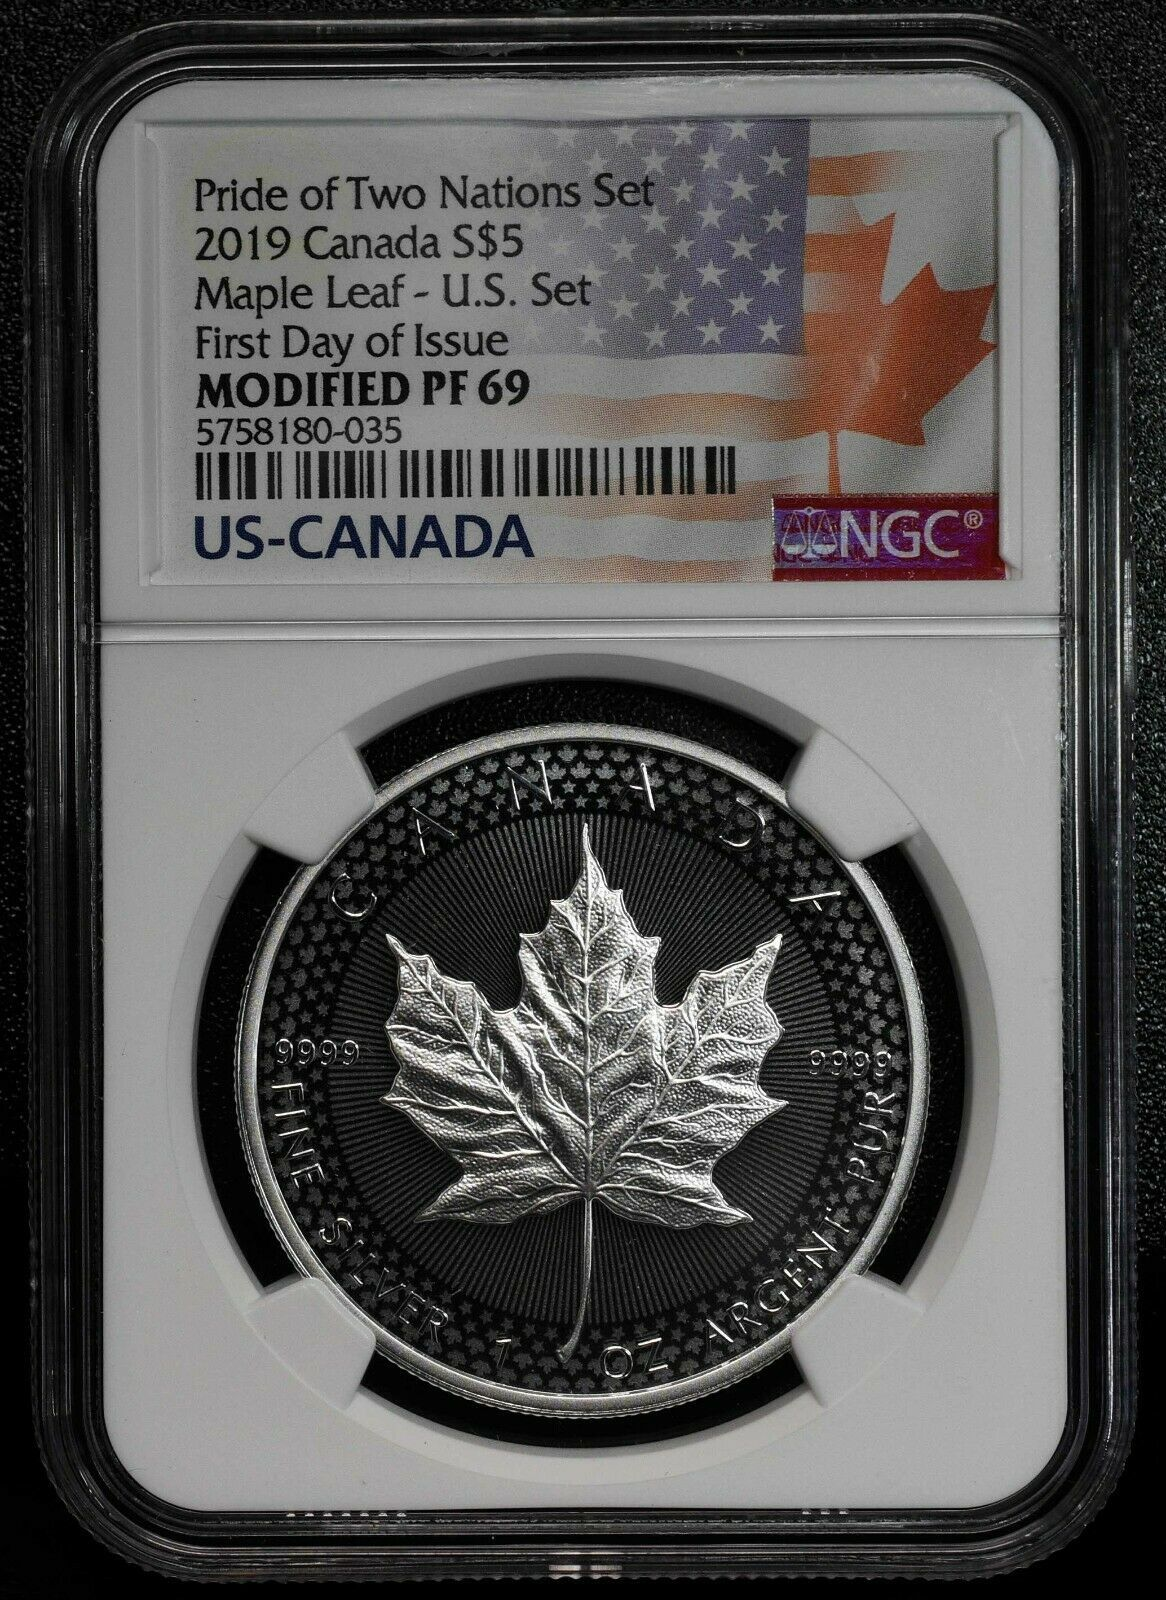 2019 Modified Proof Silver Maple Coin NGC PF69 Pride of Two Nations FDOI SKU C56